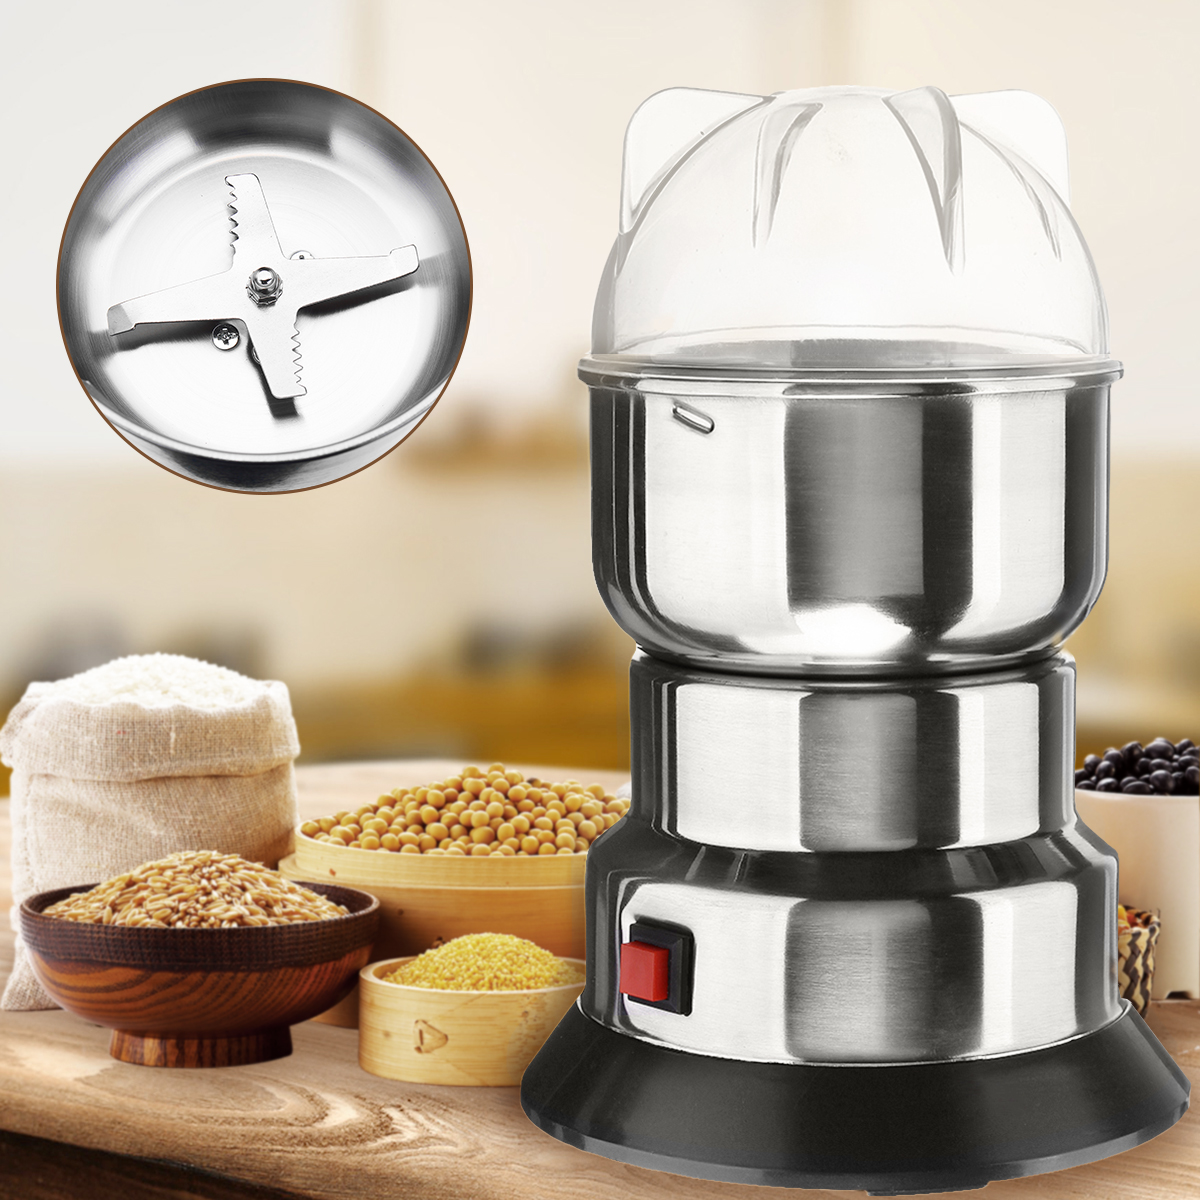 220V 200W Electric Grain Mill Spice Herb Grinder Pulverizer Powder Machine